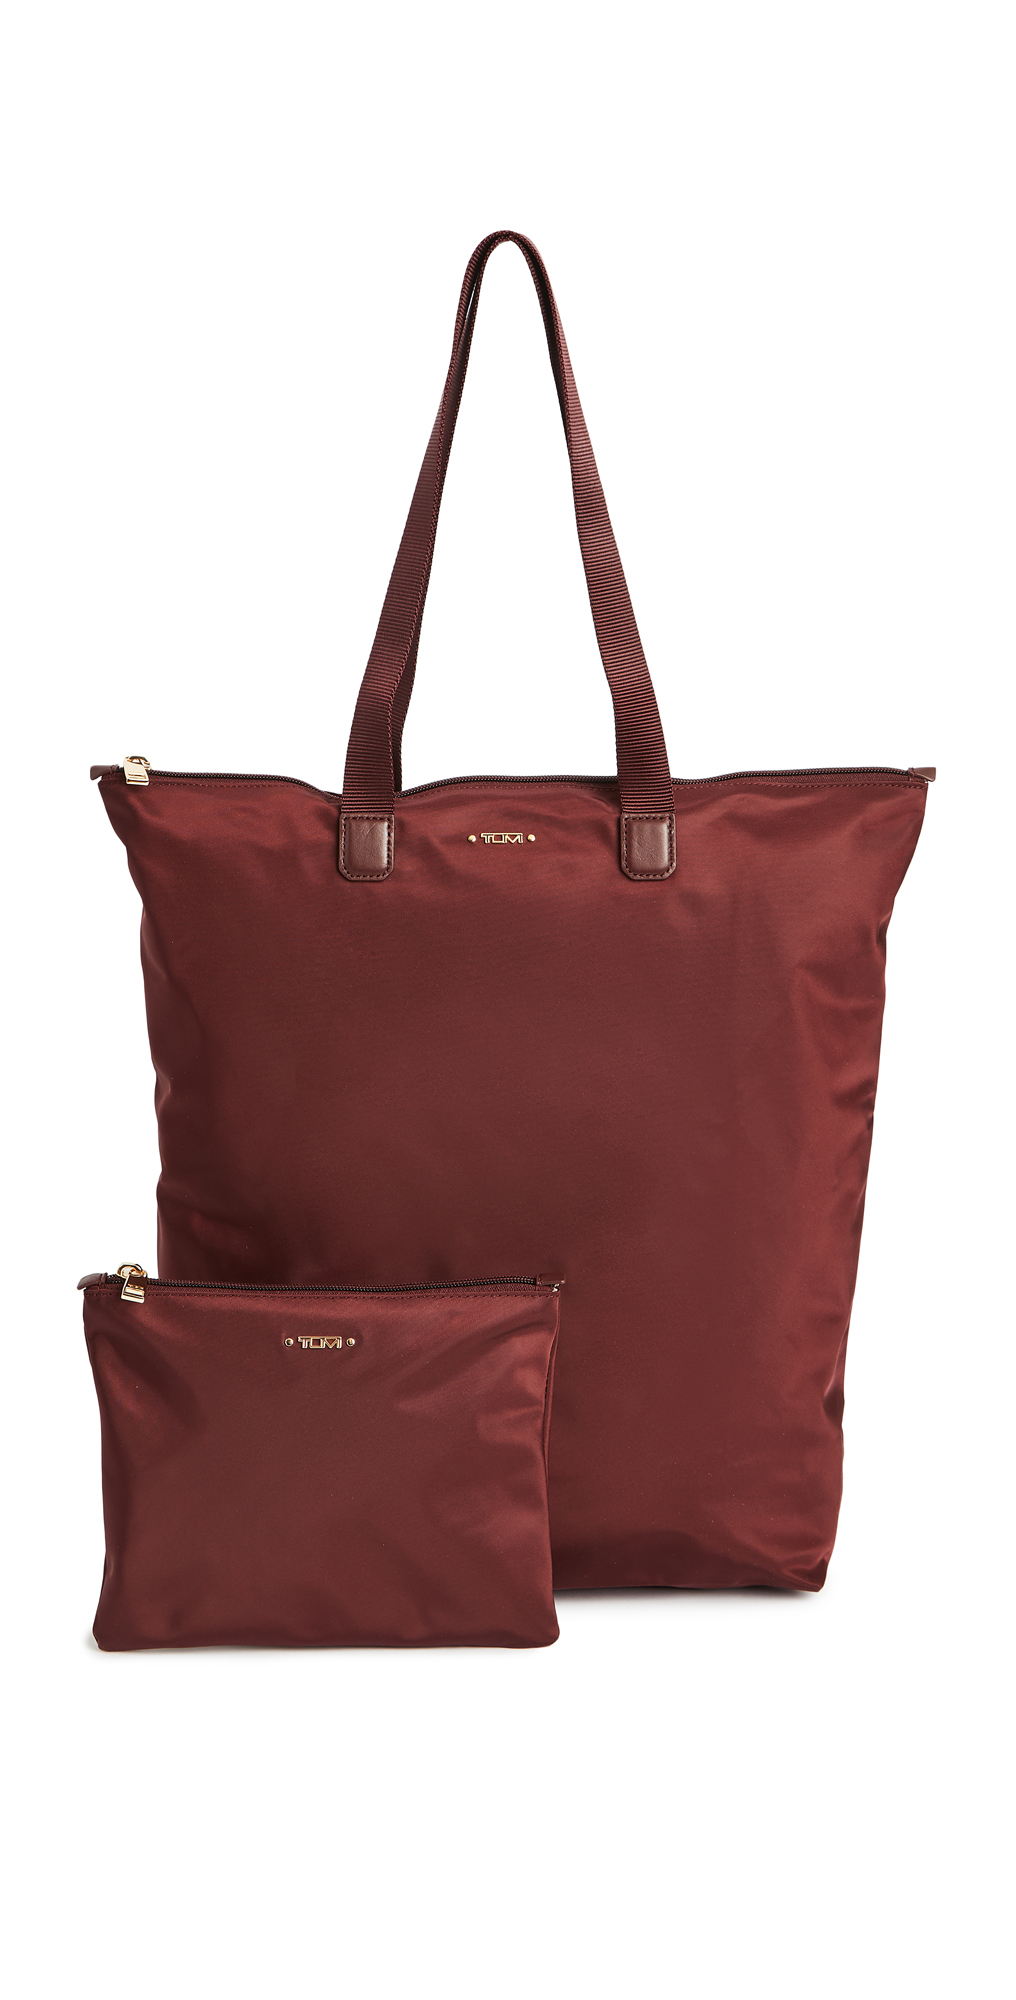 Tumi Just in Case N/S Tote Bag